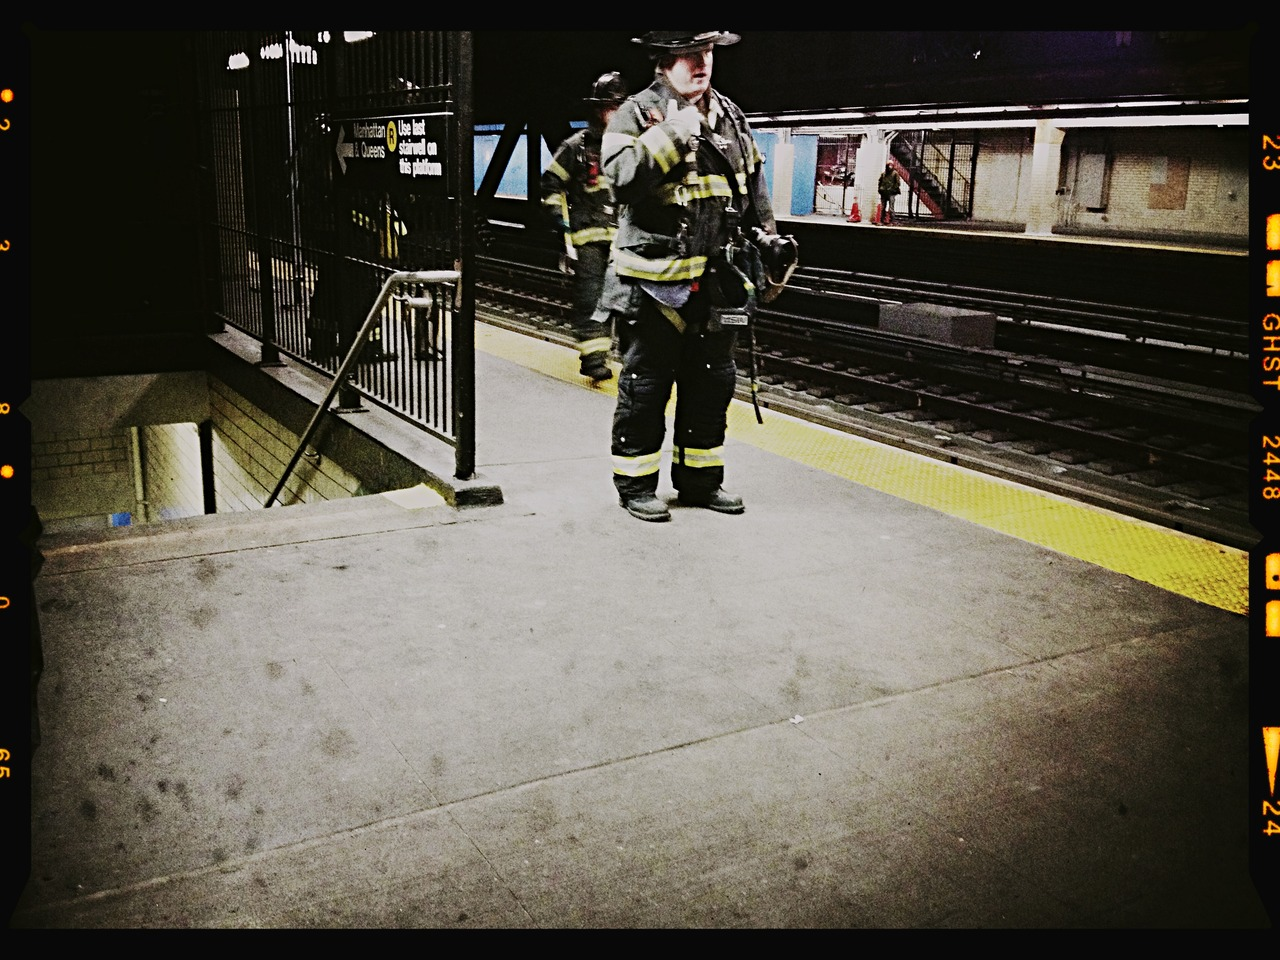 Heroes on a Platform #peppersearching #pepper #fireman #nyc #brooklyn #mya